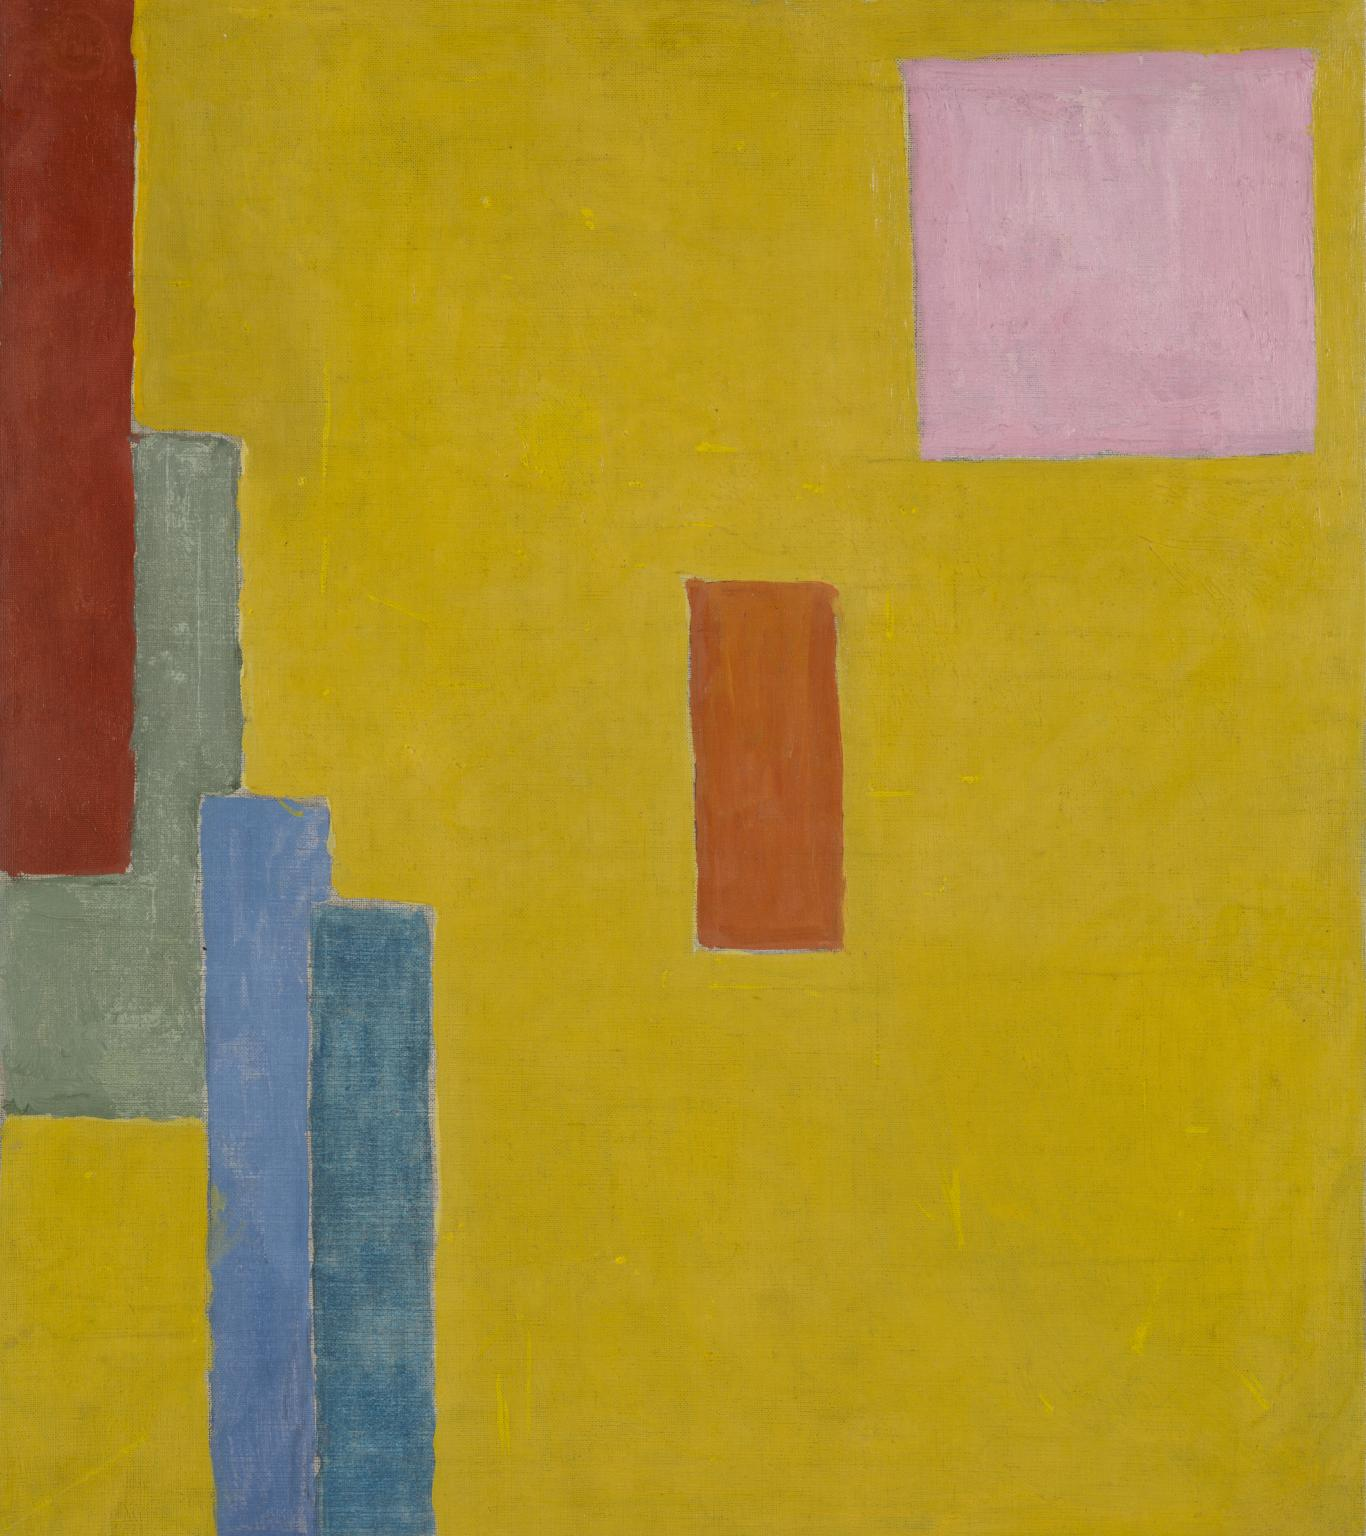 Abstract Painting av Vanessa Bell från 194. Bild: Tate